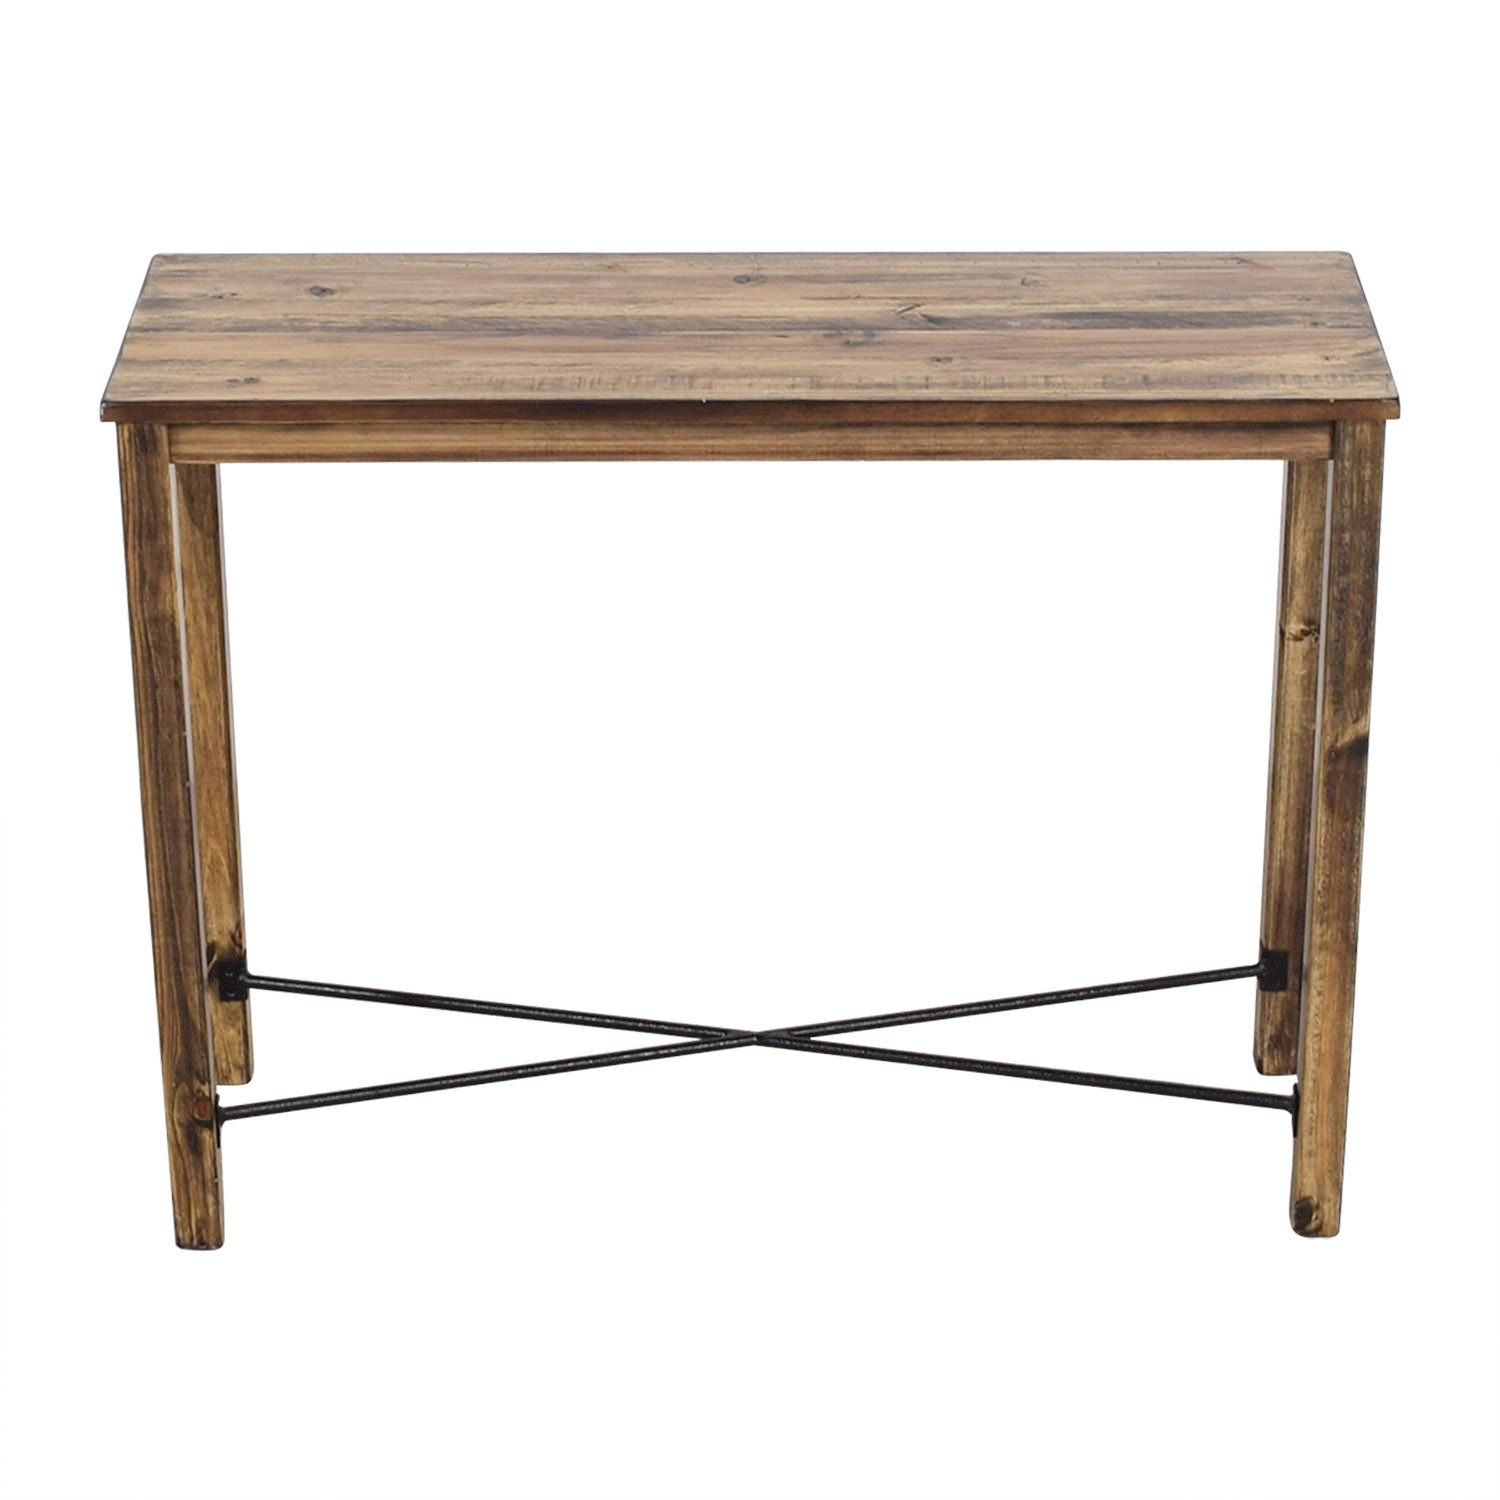 Iron Cross Bar Distressed Hardwood Console Table on sale